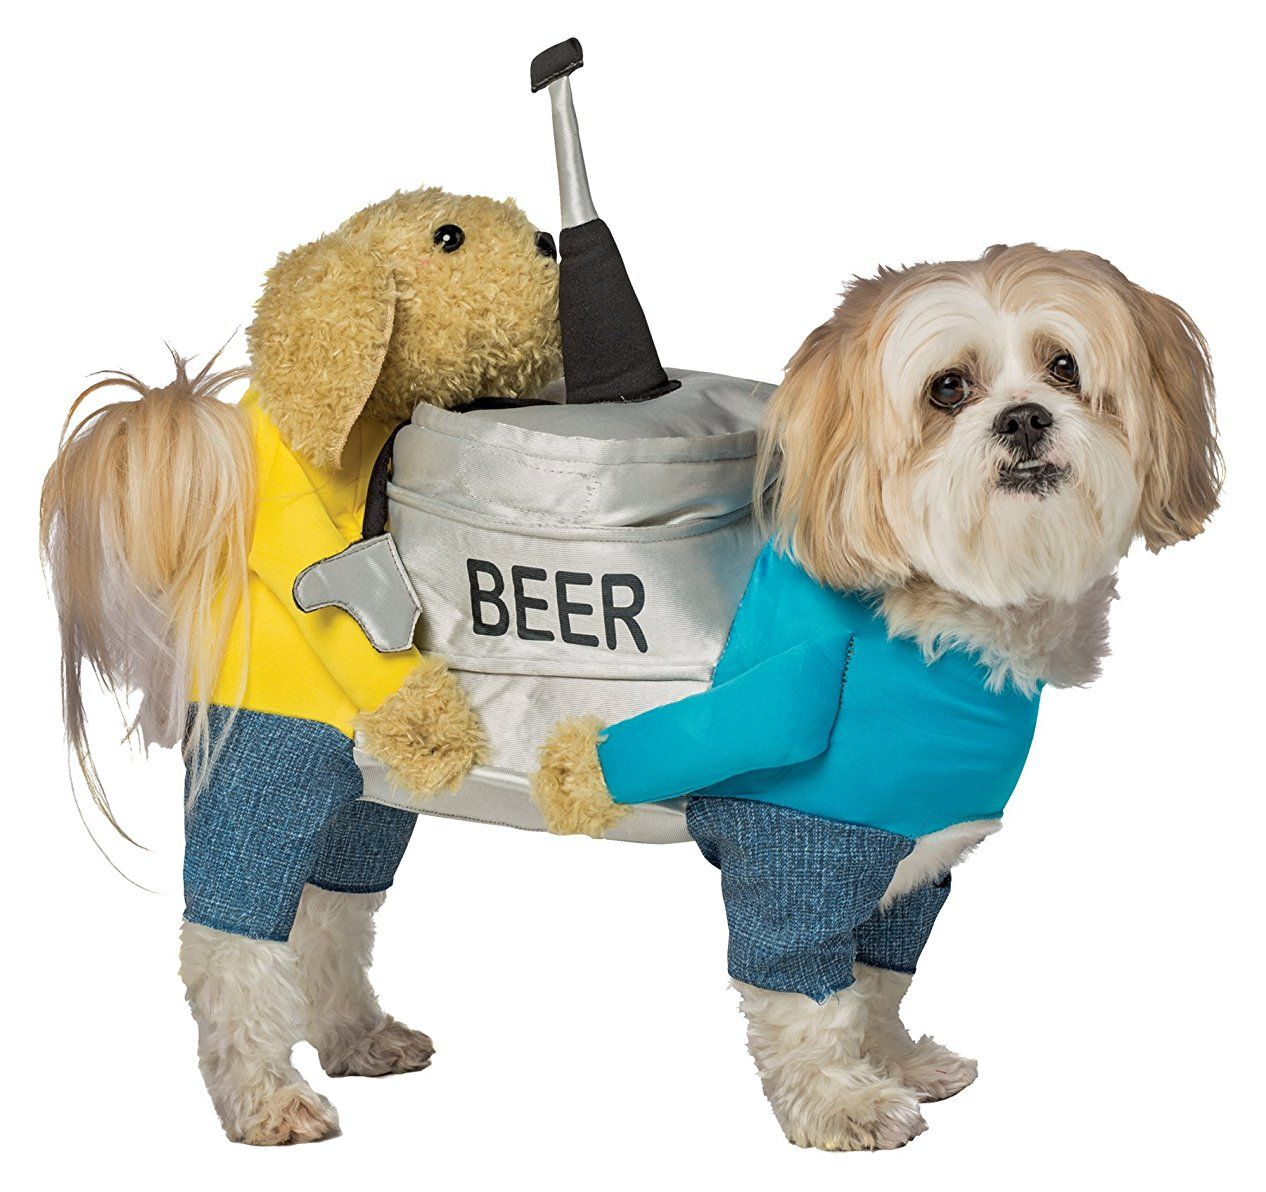 ad08323d3081 Do Not Miss The Opportunity To Dress Your Dog Up Like Your Favorite Food  This Halloween